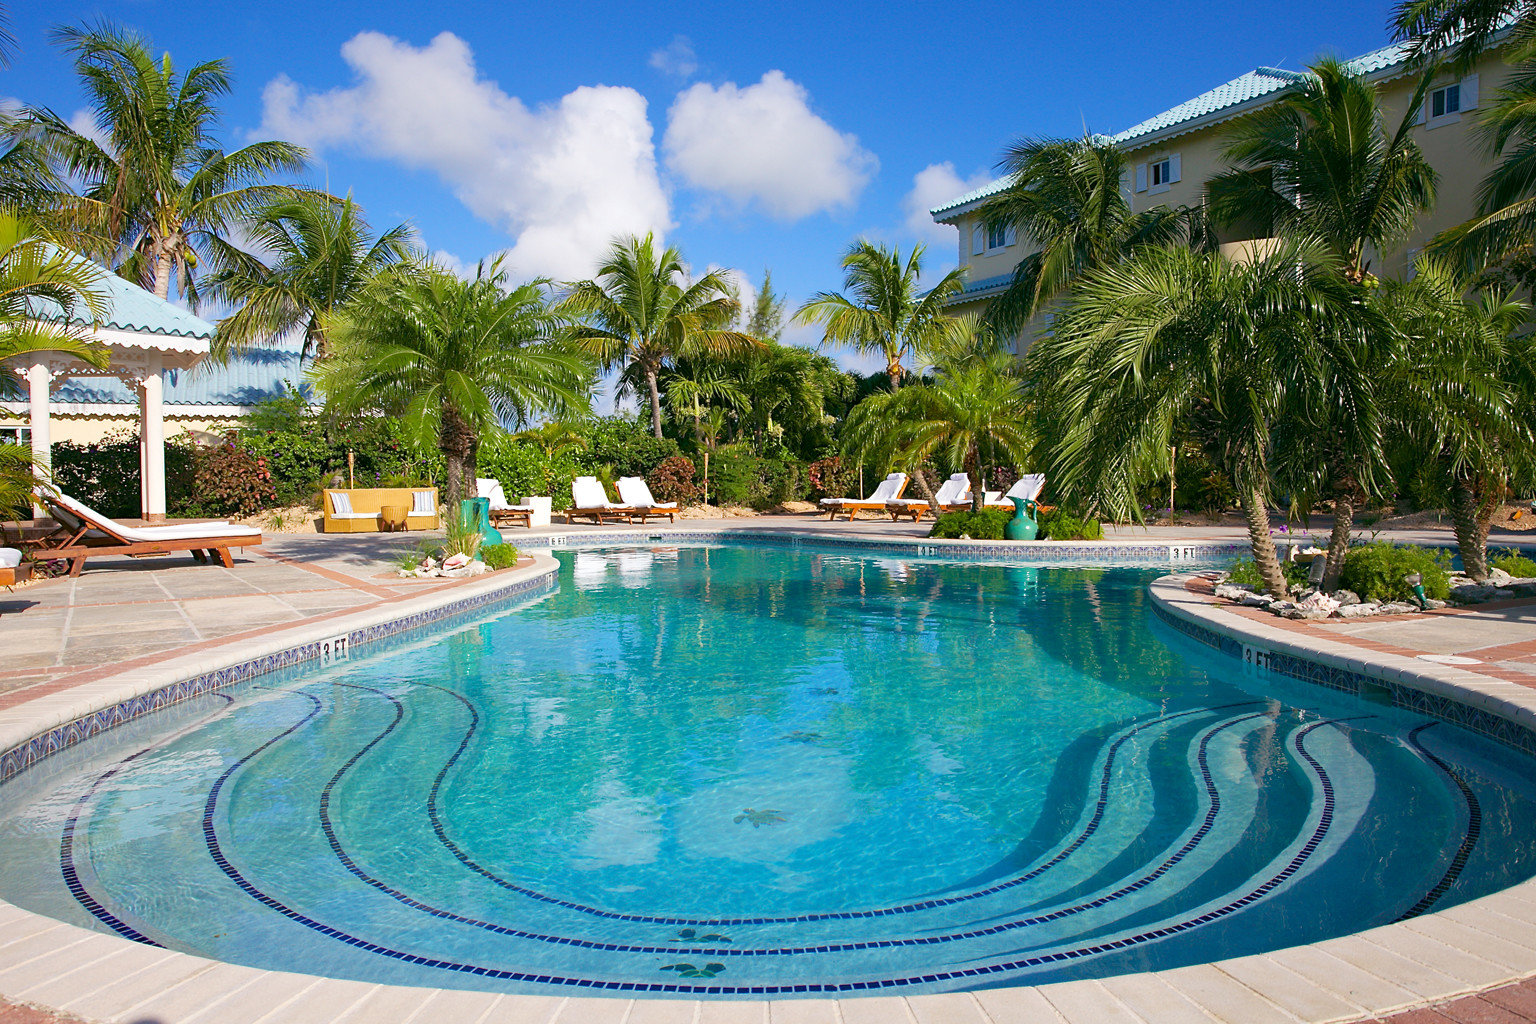 All-Inclusive Resorts Beachfront Boutique Luxury Pool Resort tree outdoor sky ground swimming pool property estate leisure vacation caribbean resort town real estate Villa Lagoon backyard blue palm